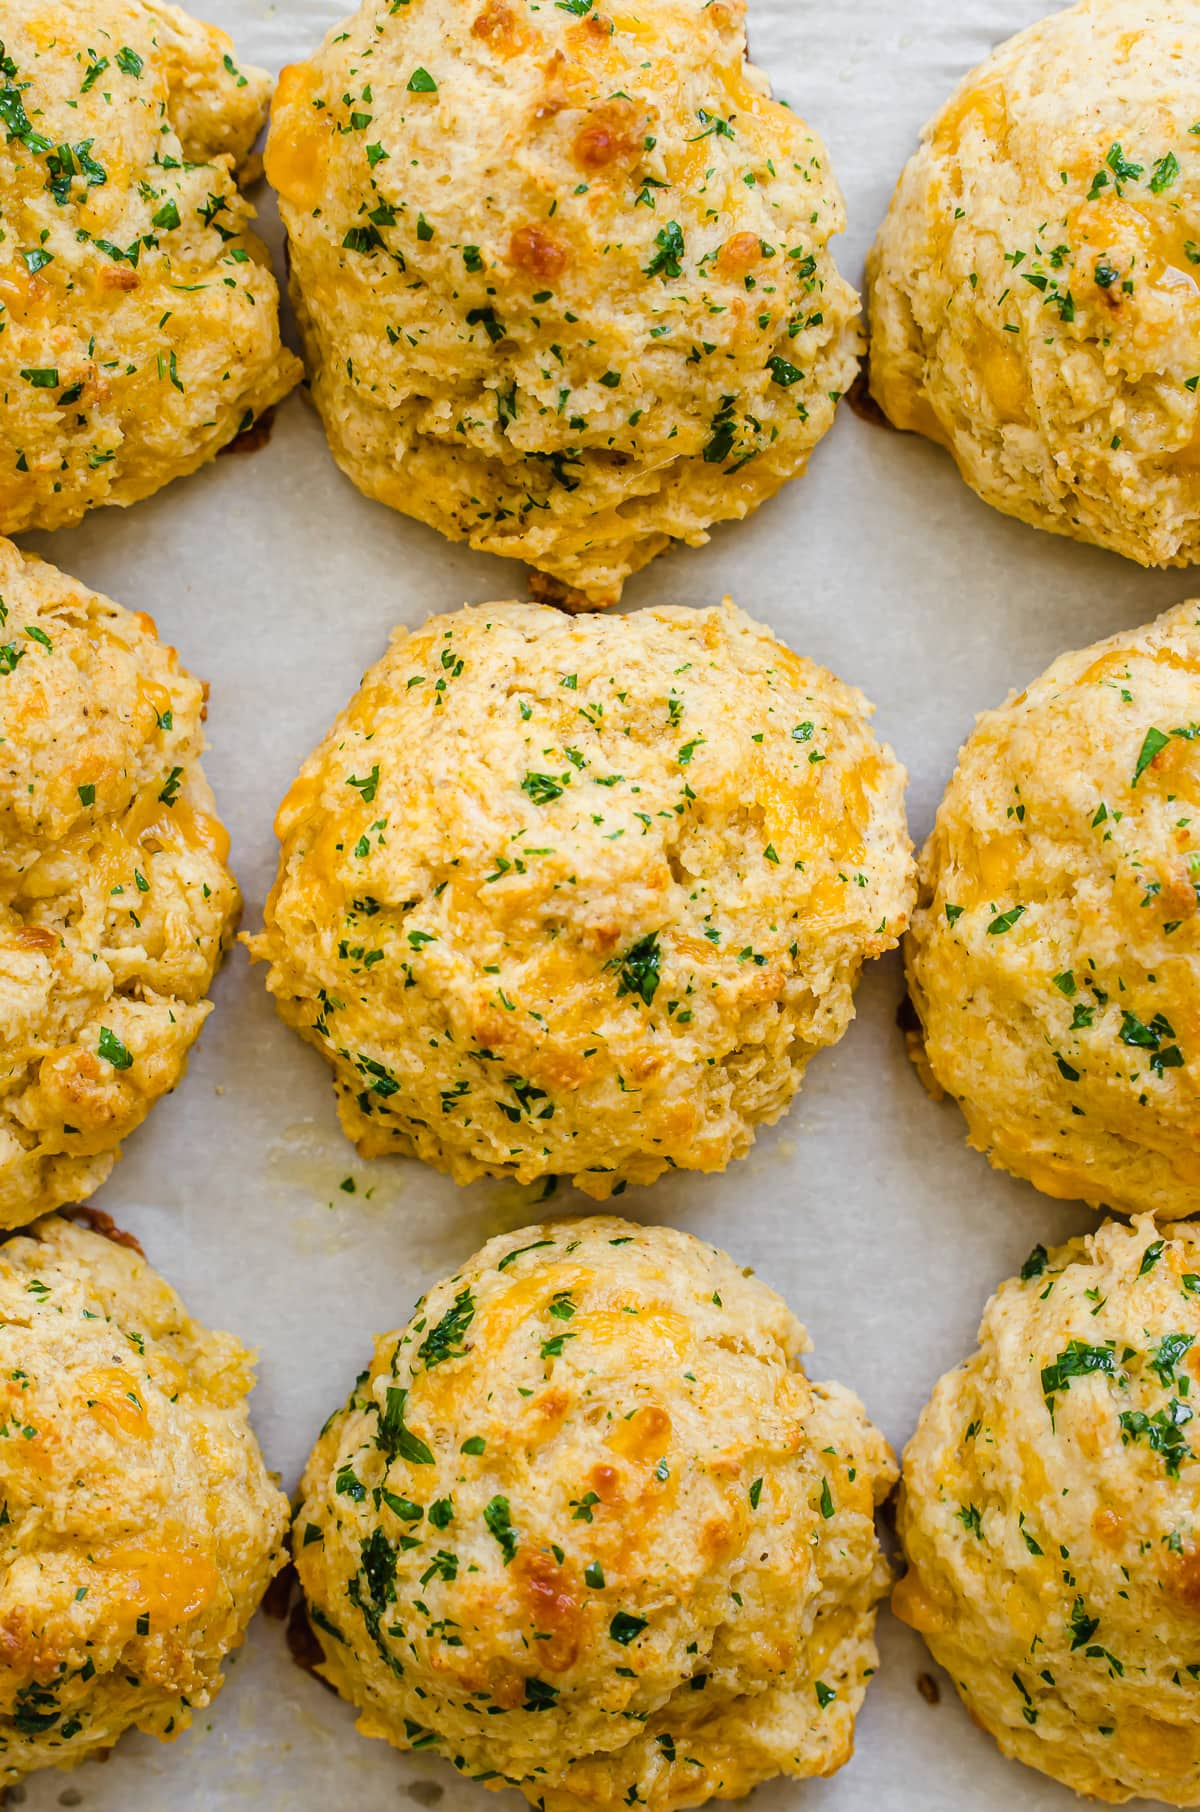 A close-up shot of cheddar bay biscuits on a baking sheet lined with parchment paper.